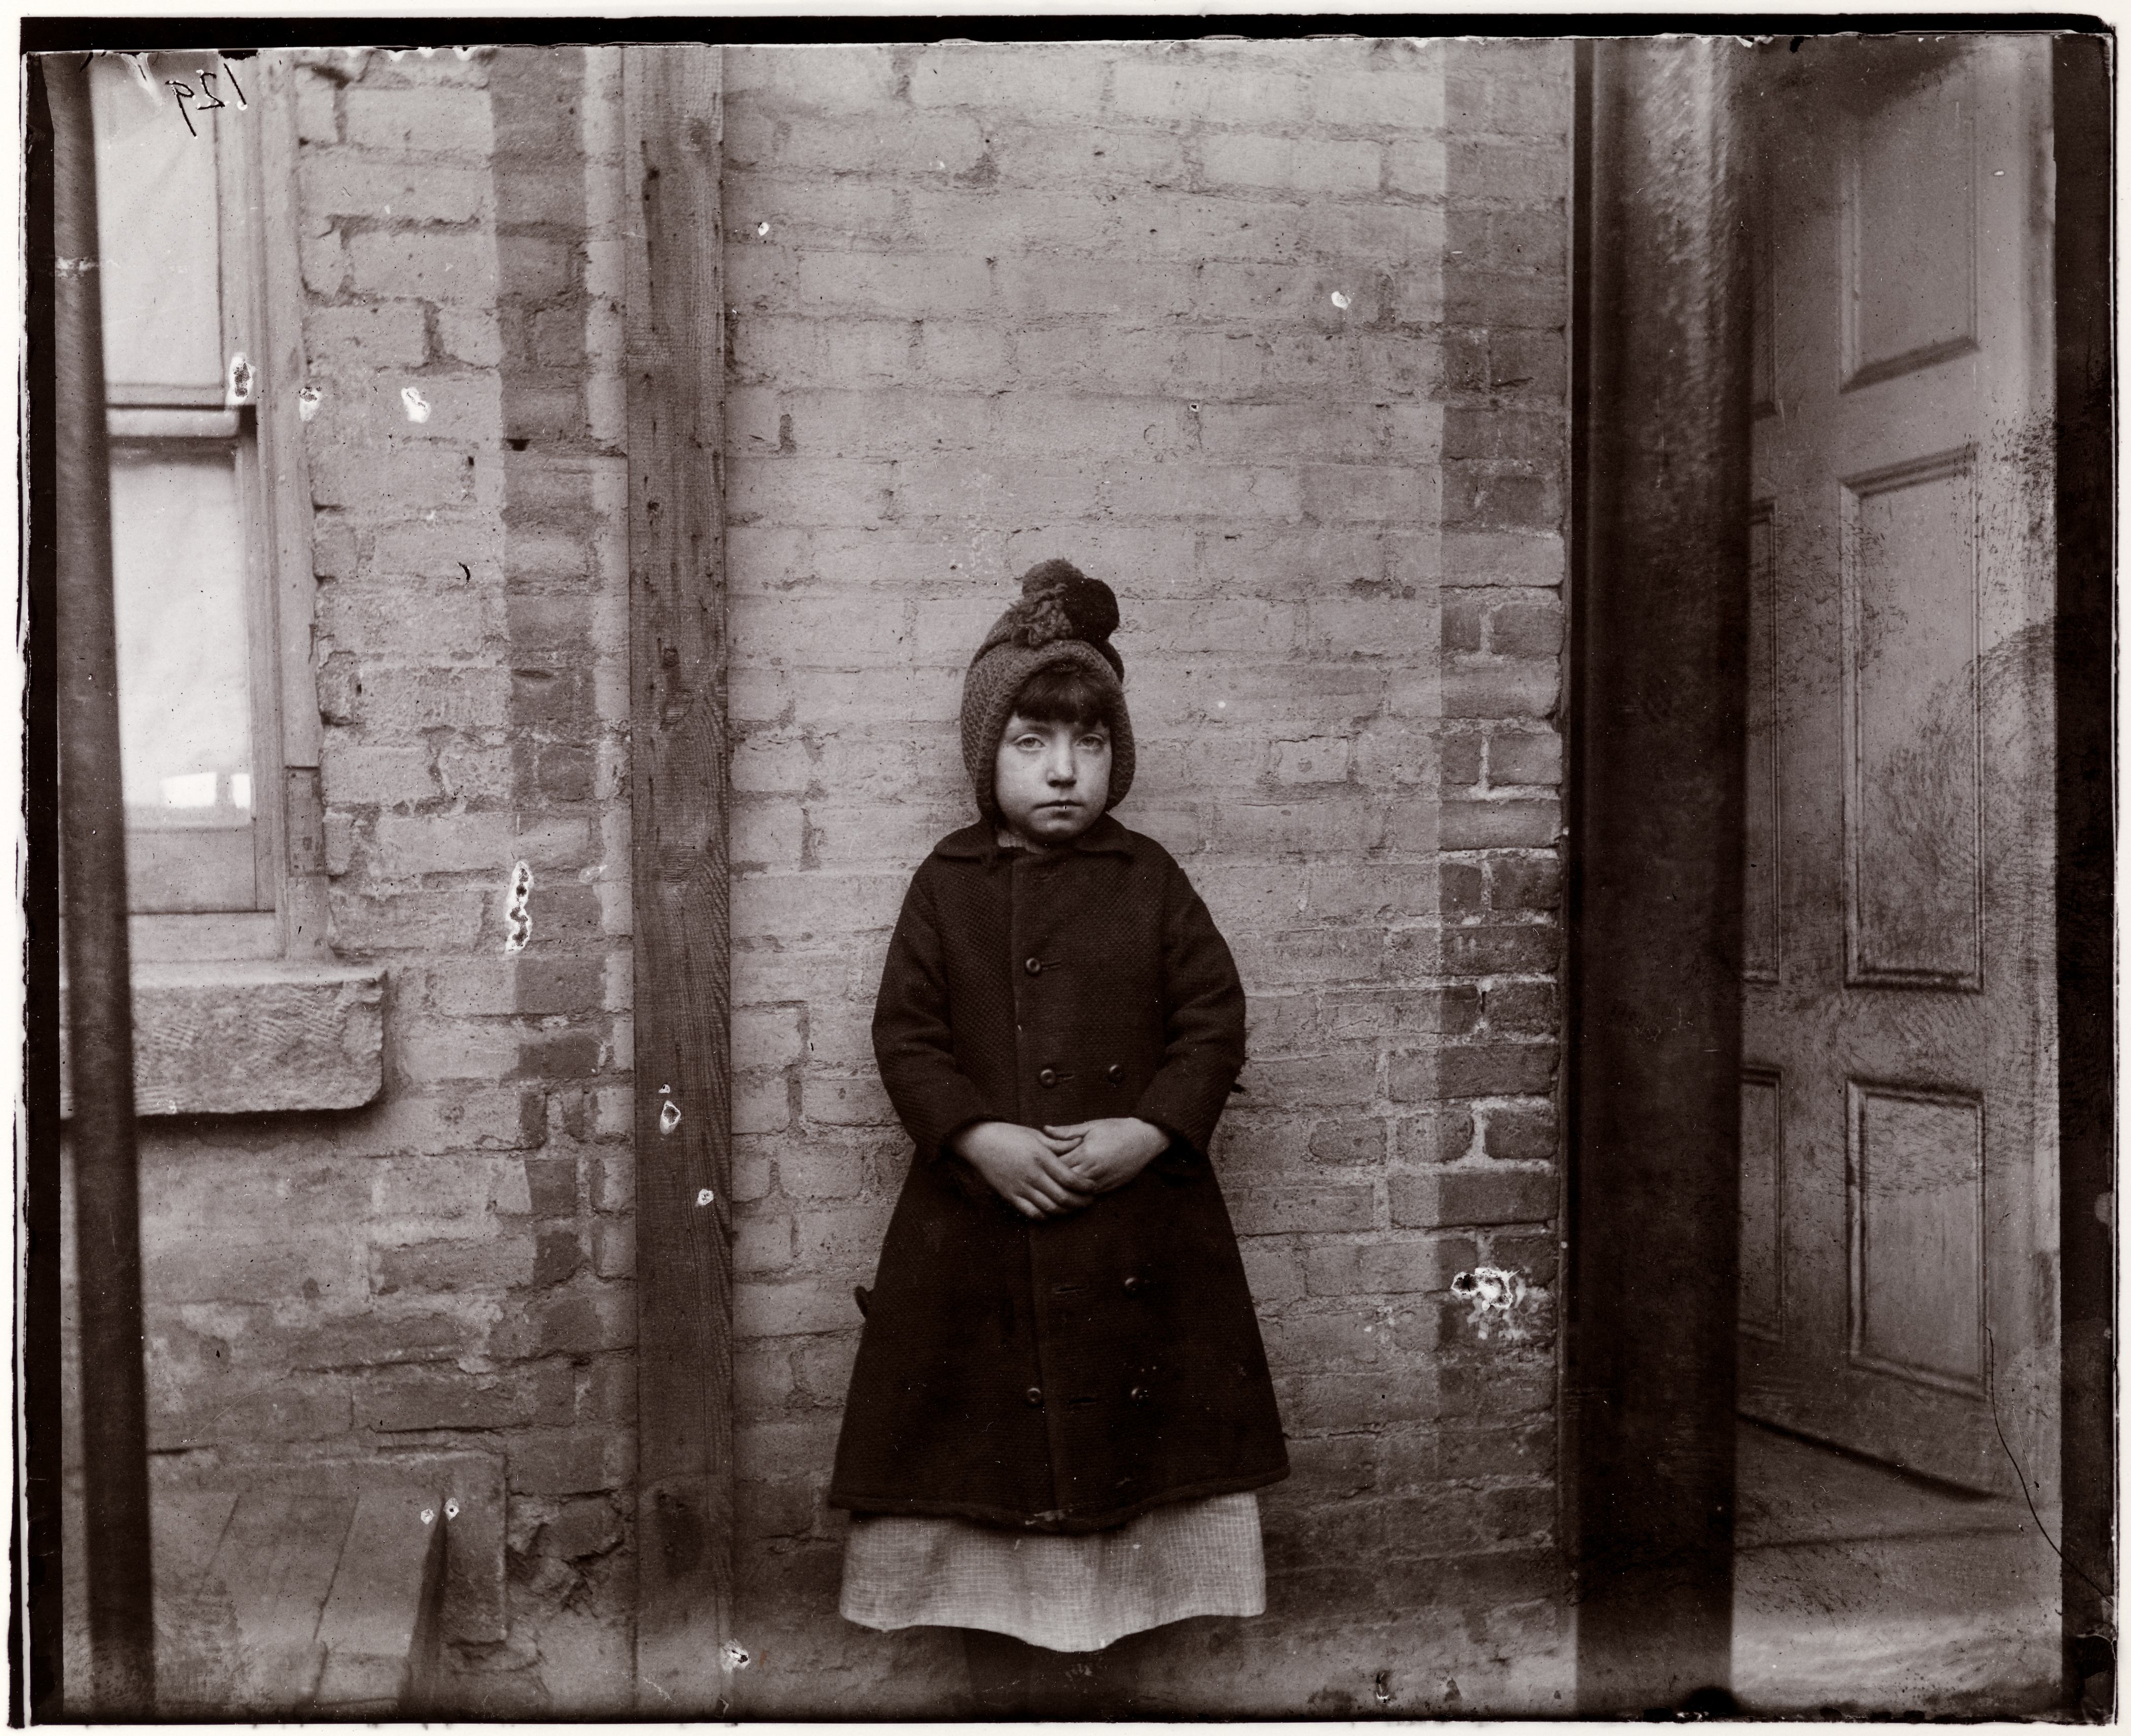 Jacob A. Riis: How the Other Half Lives Image